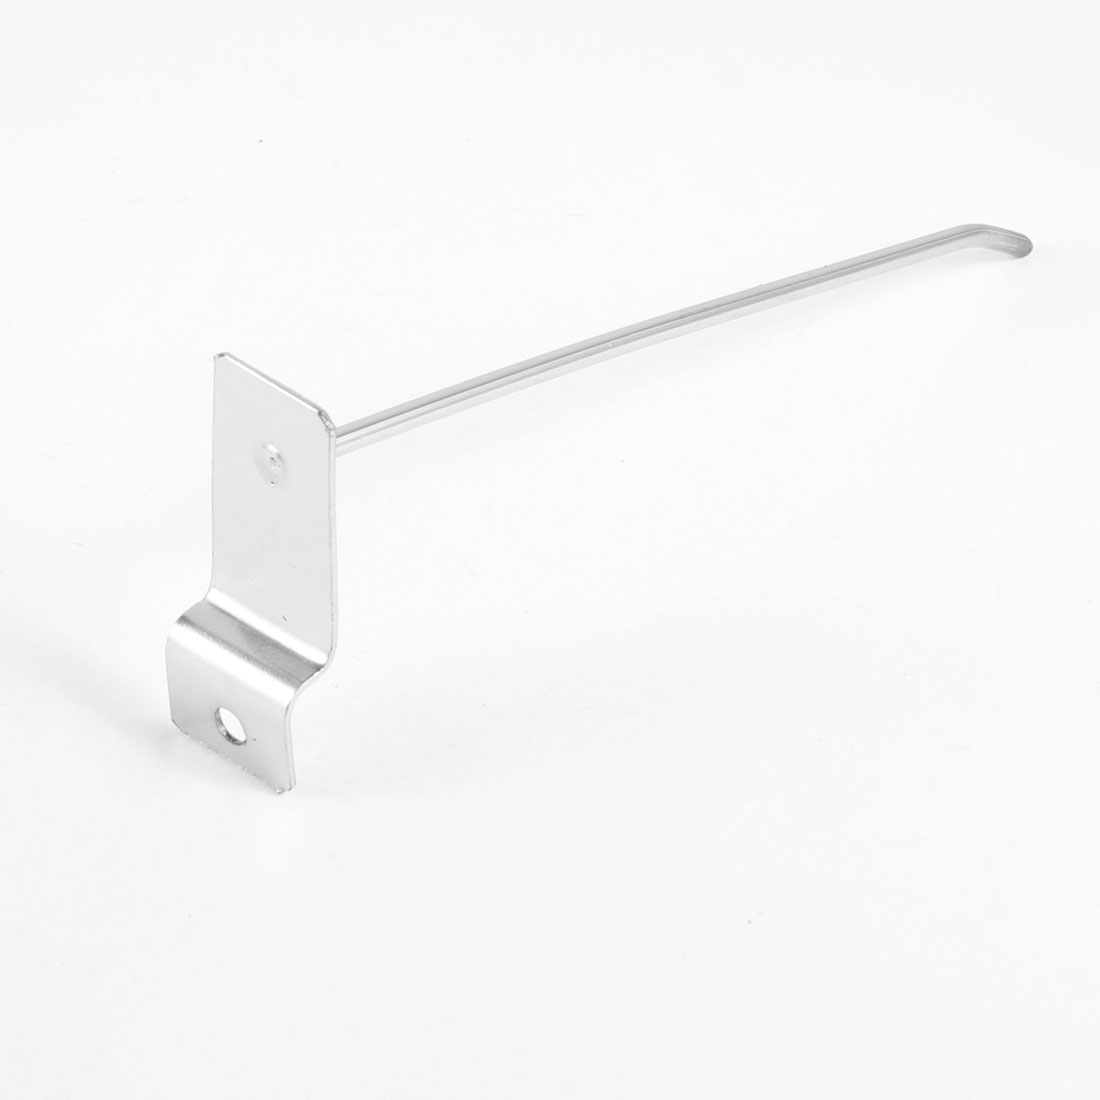 "Wall Board Shelf Rectangular Base Display Hooks 15cm 6"" Length"